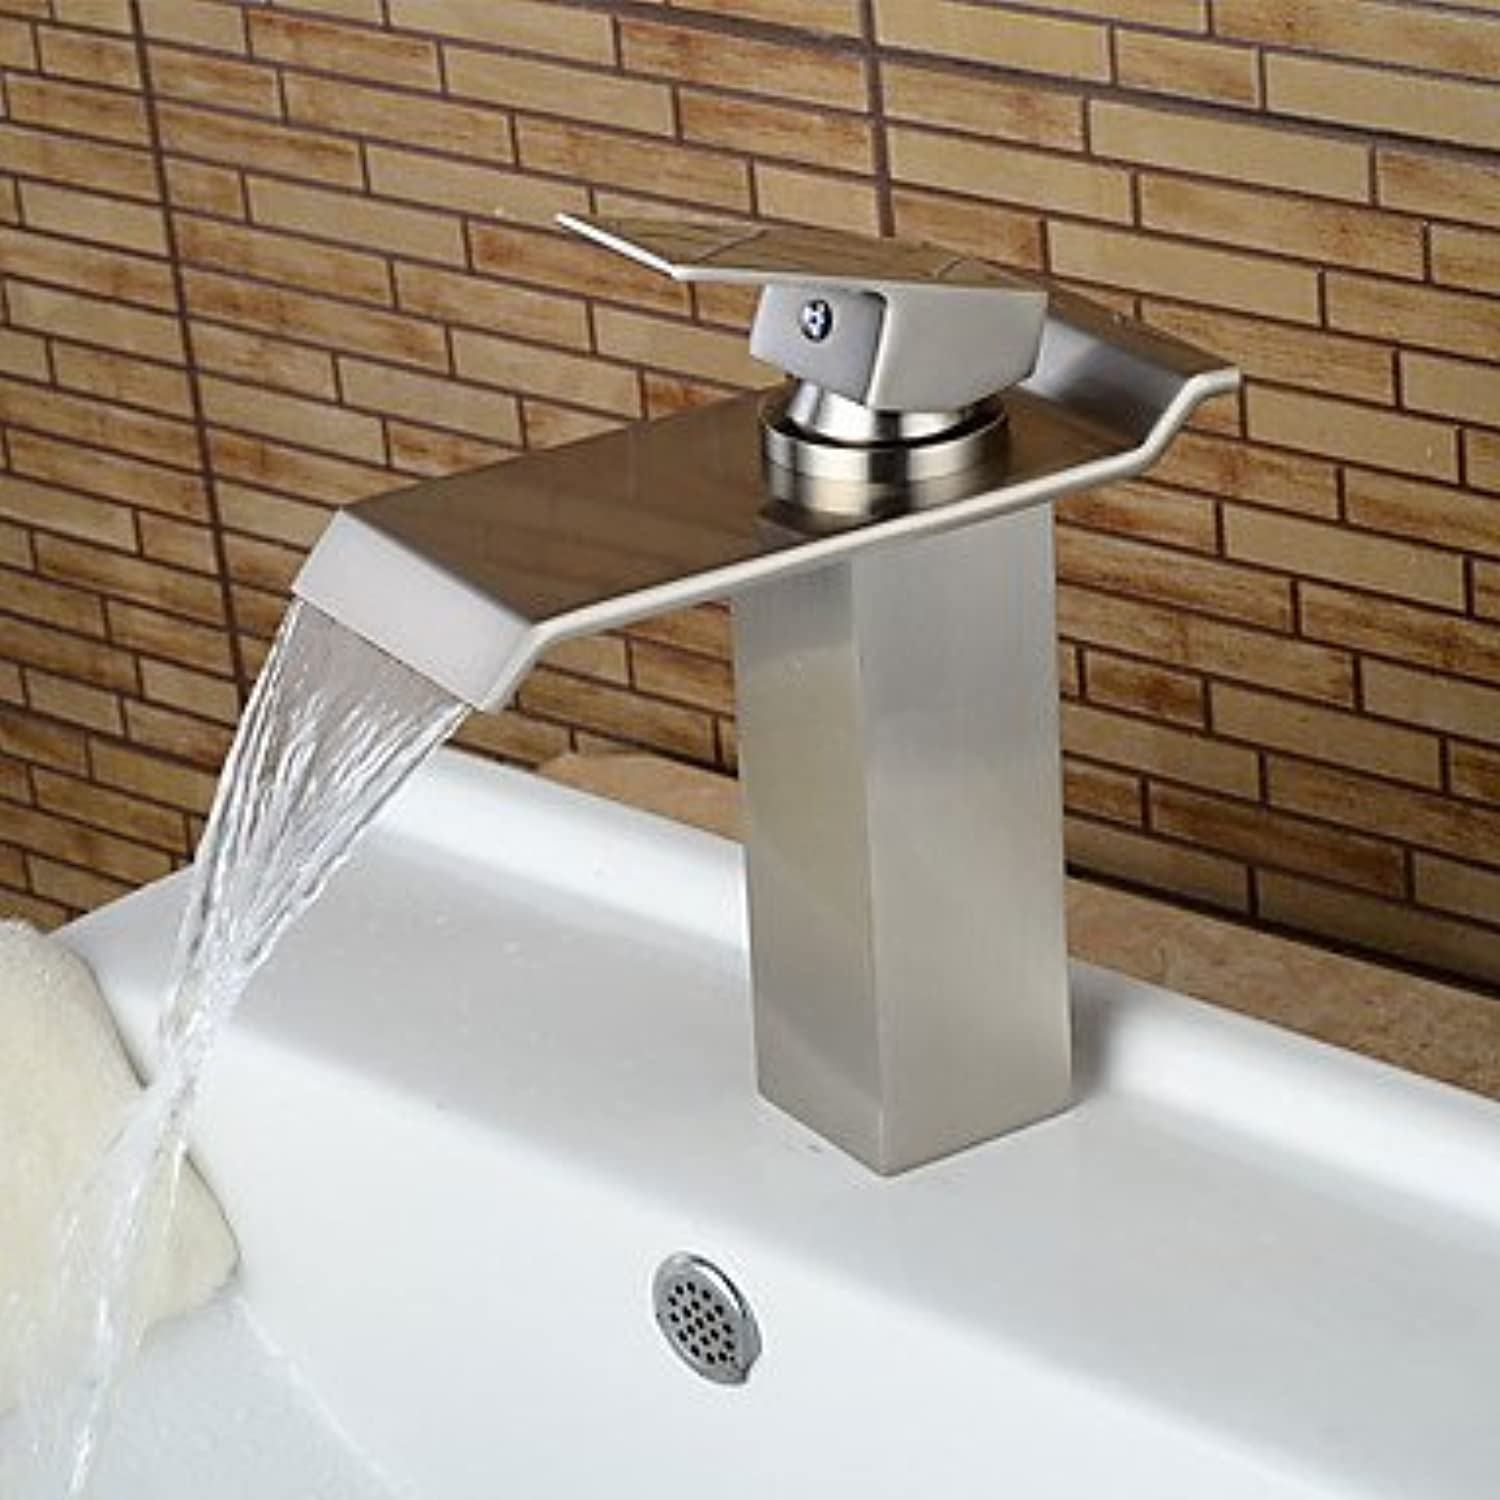 ZLL ?ìContemporary Centerset Waterfall with Ceramic Valve Single Handle One Hole for Chrome , Bathroom Sink Faucet , 58 x 8 cm